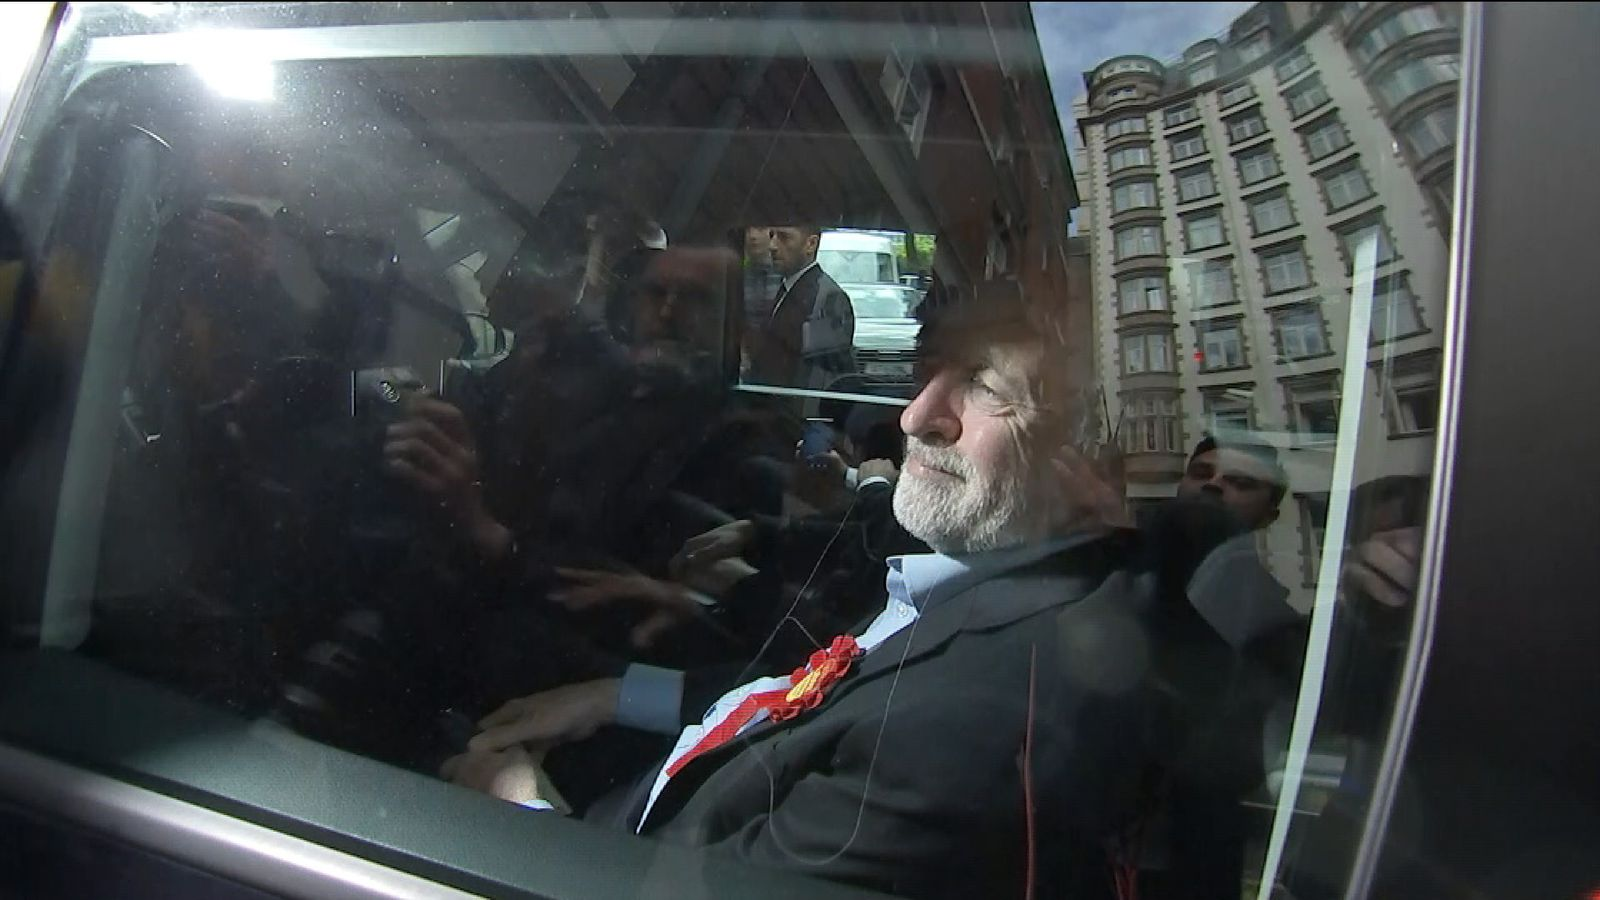 Jeremy Corbyn's car runs over a BBC cameraman's foot